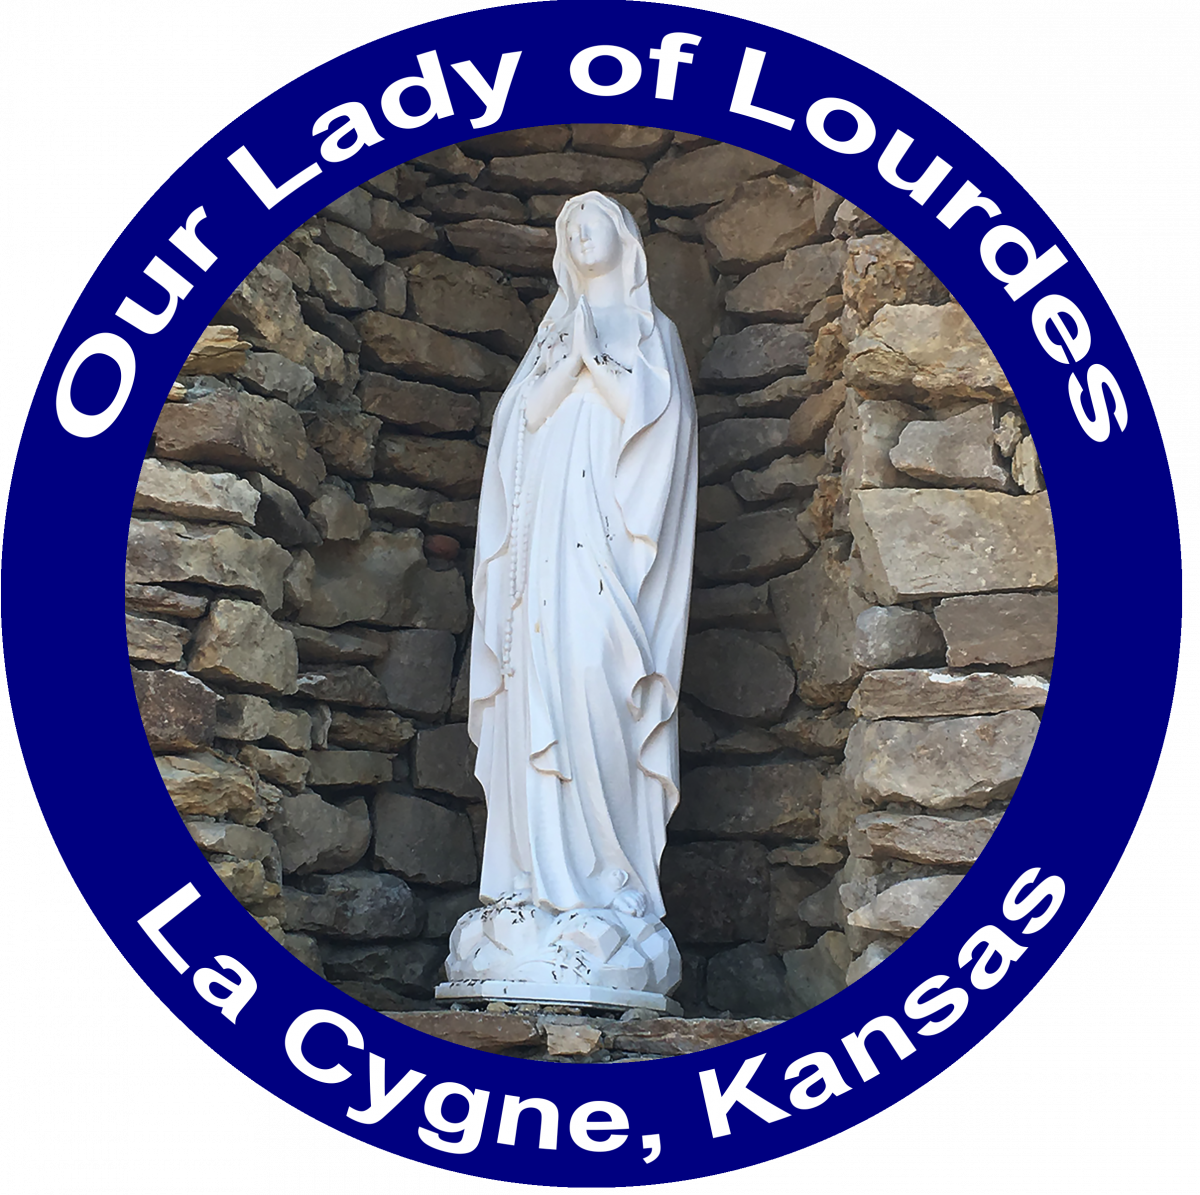 Our Lady of Lourdes in La Cygne Kansas